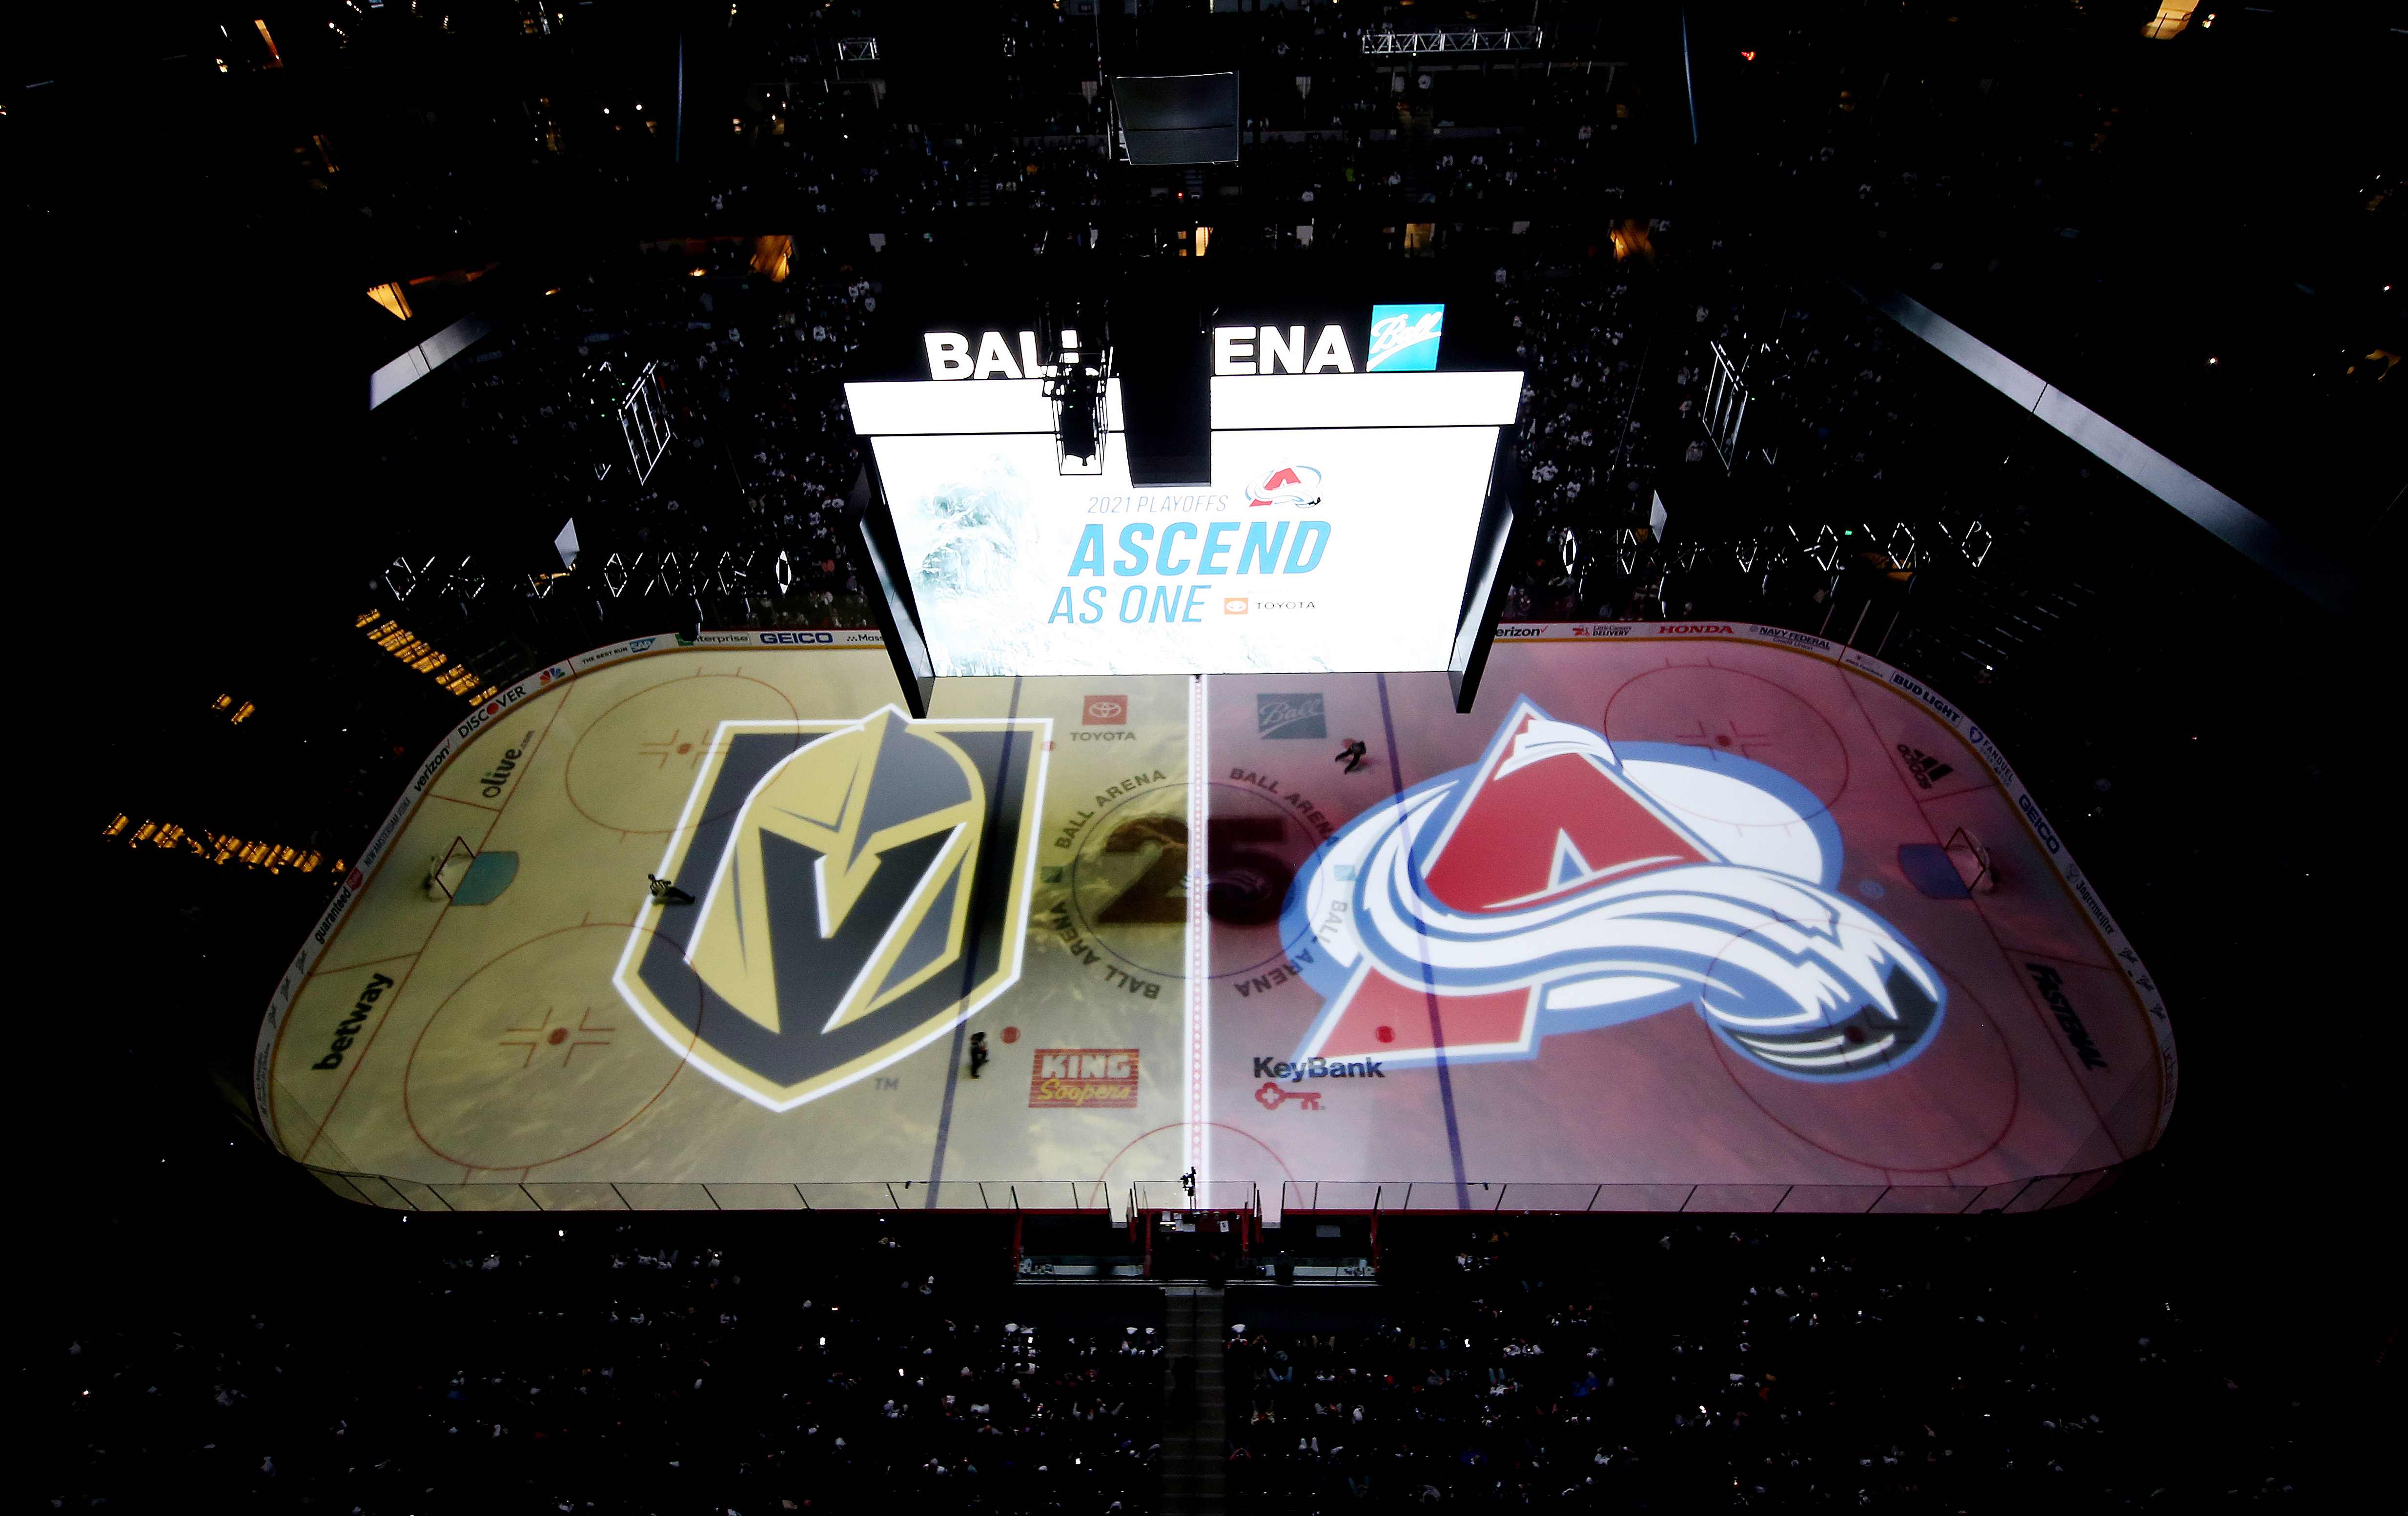 A general view of Ball Arena prior to the game between the Colorado Avalanche and the Vegas Golden Knights In Game One of the Second Round of the 2021 Stanley Cup Playoffs on May 30, 2021 in Denver, Colorado. The Avalanche defeated the Golden Knights 7-1.